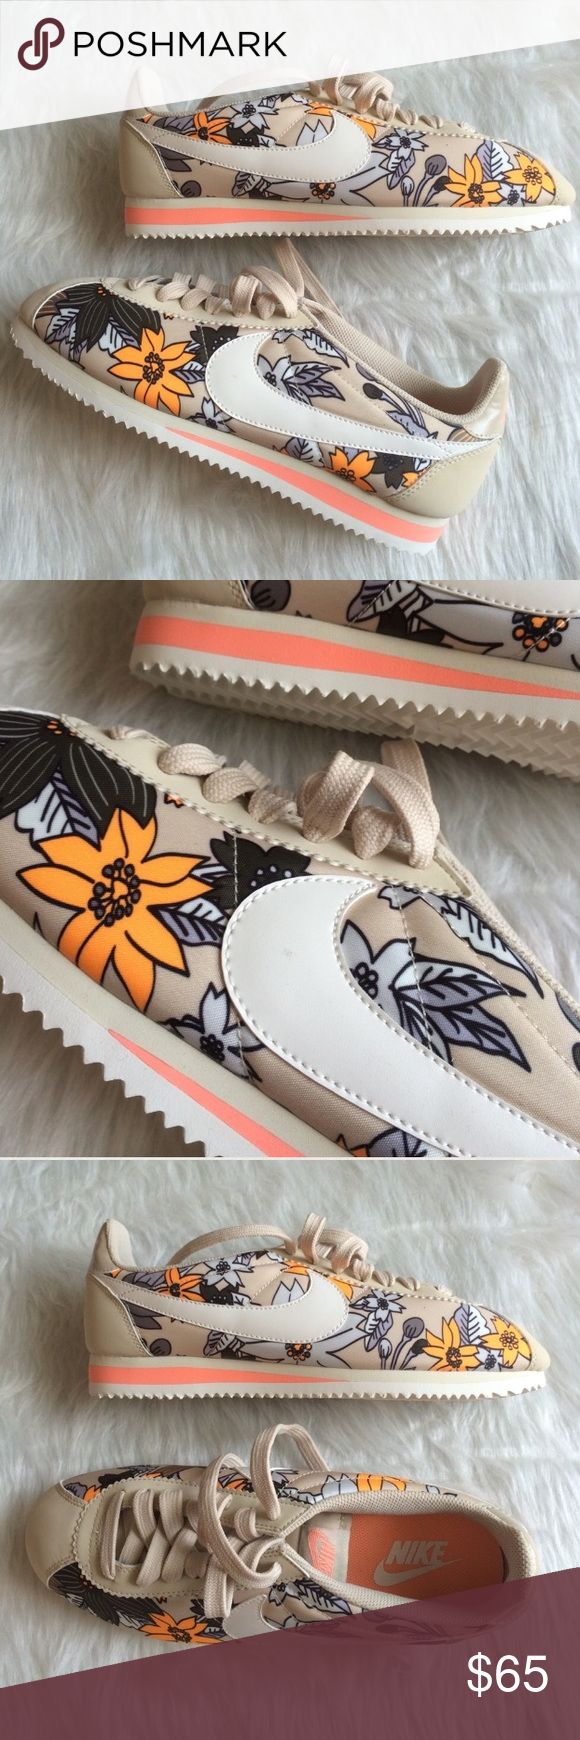 Nike Cortez floral beige womens shoes Brand new without box. Ships same day or very next. 100% authentic. Comment if you have any questions before purchasing. WOMENS Nike Shoes Sneakers